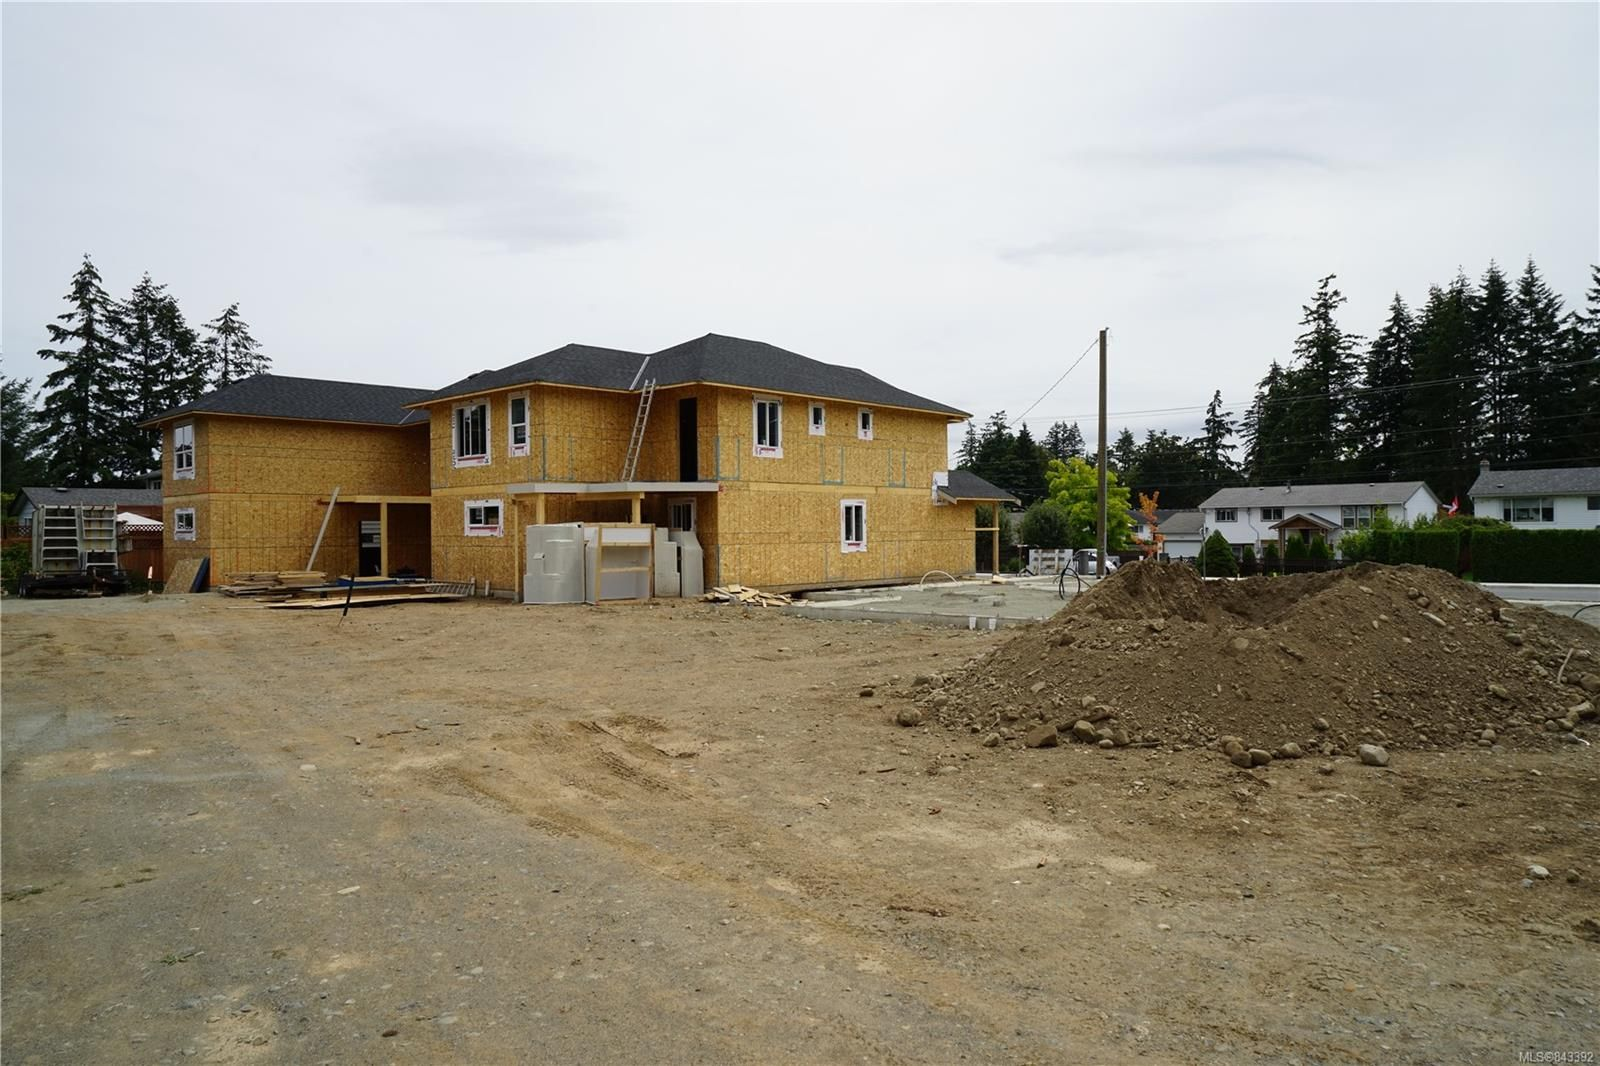 Photo 5: Photos: 2584 Rosstown Rd in NANAIMO: Na Diver Lake House for sale (Nanaimo)  : MLS®# 843392